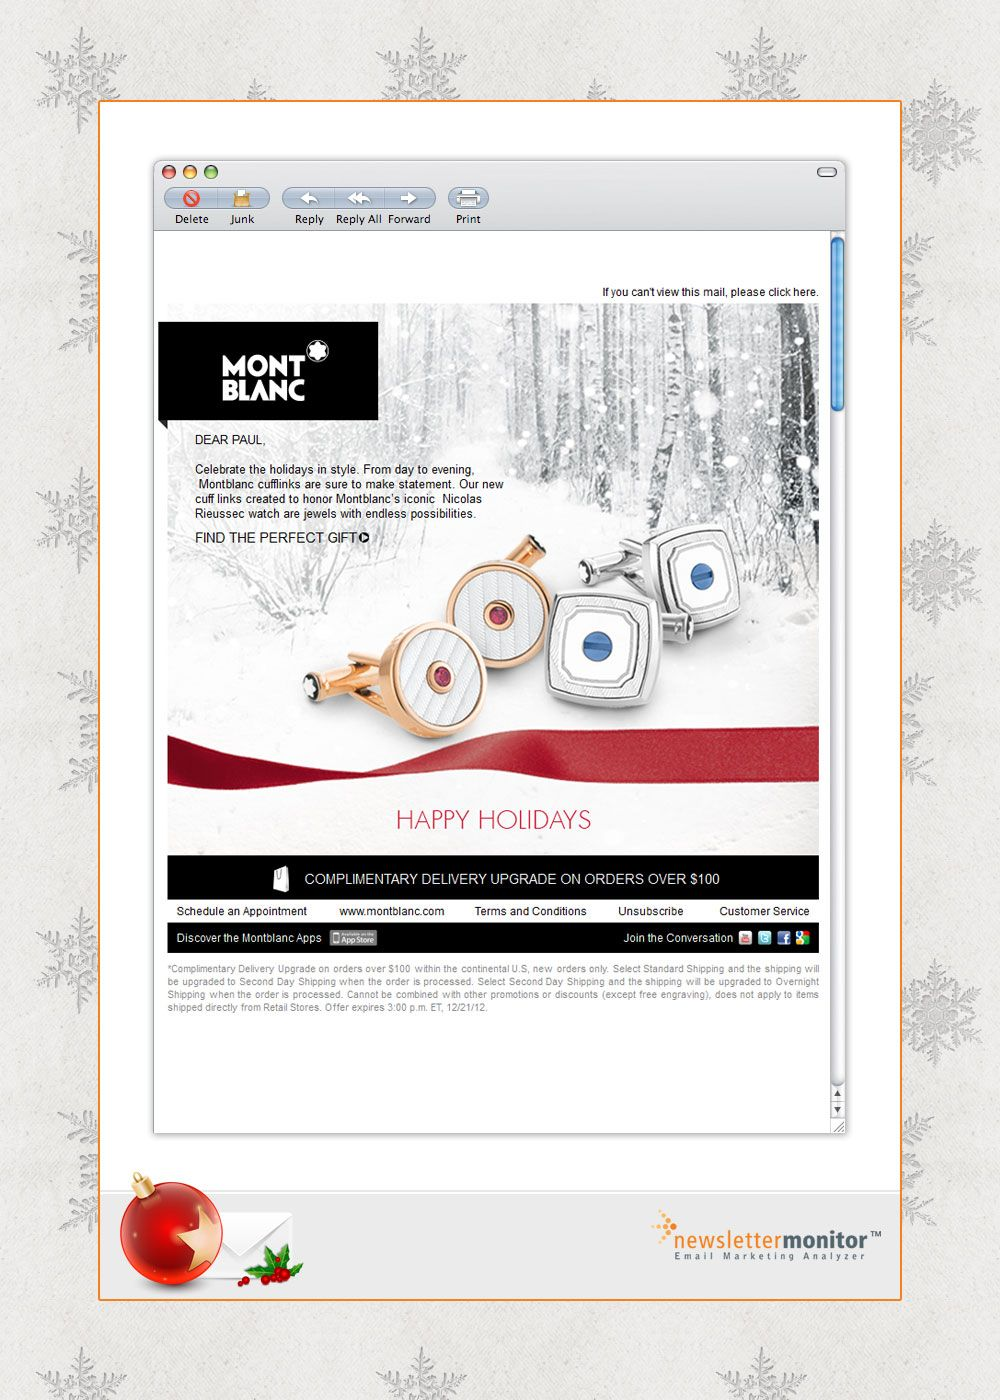 Brand: Montblanc | Subject: Celebrate the Holidays in Style ...